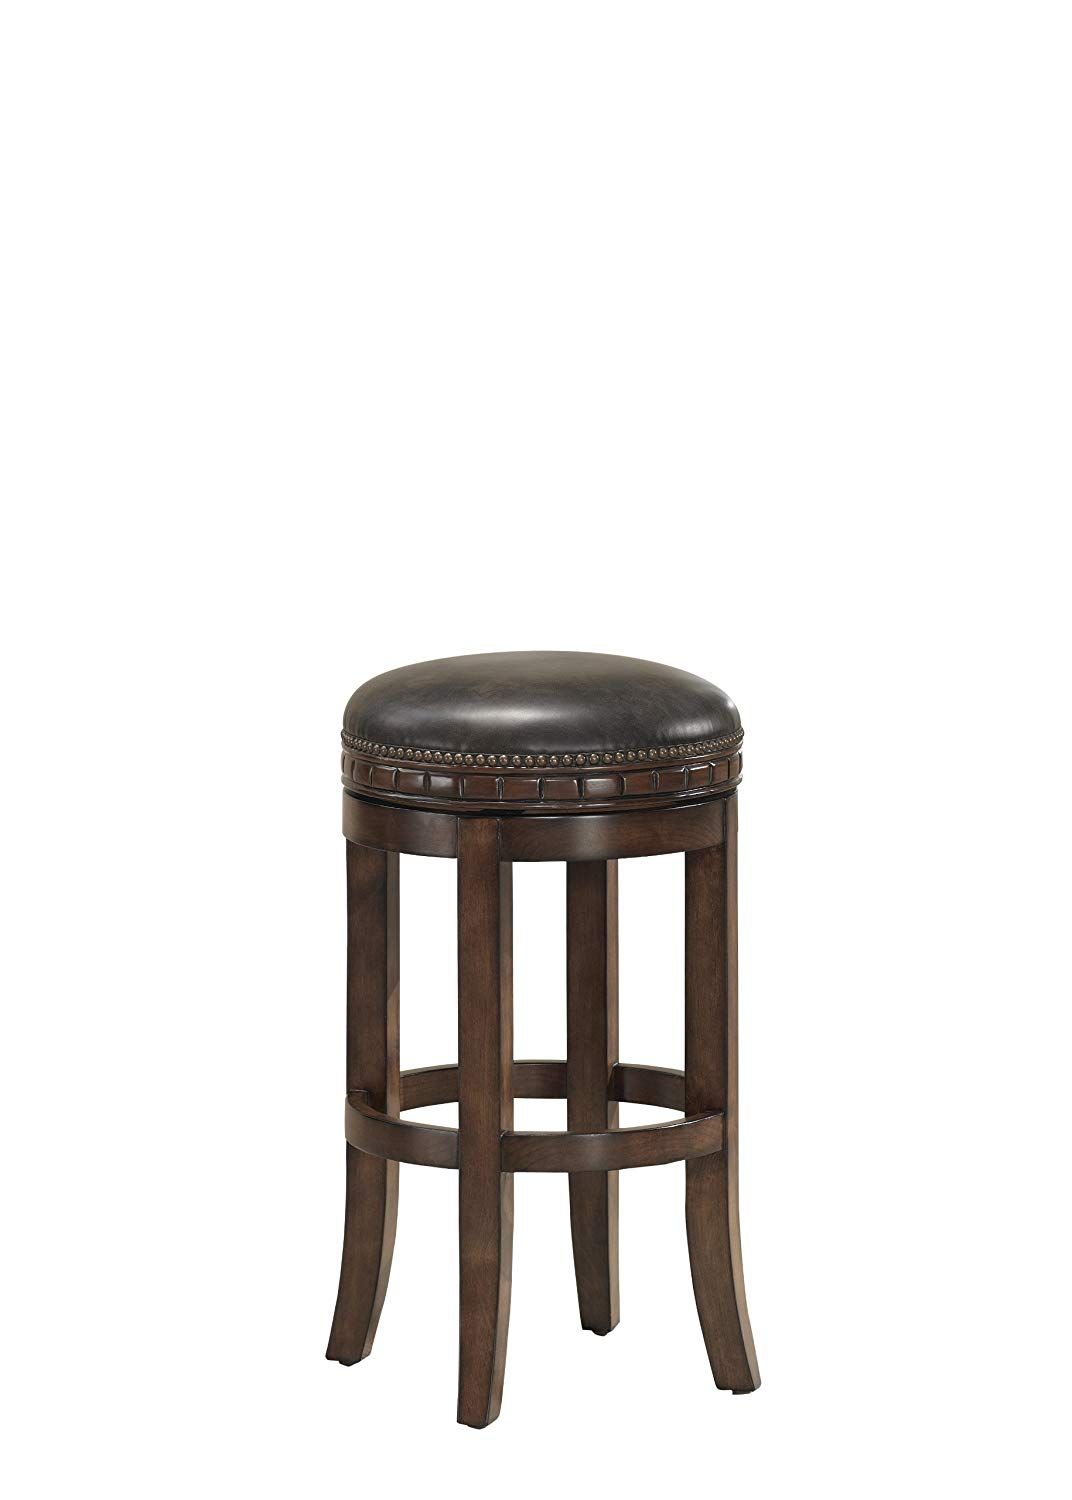 American Heritage Billiards Sonoma Bar Height Stool Suede American Heritage Billiards Tall Bar Stools Counter Height Stools